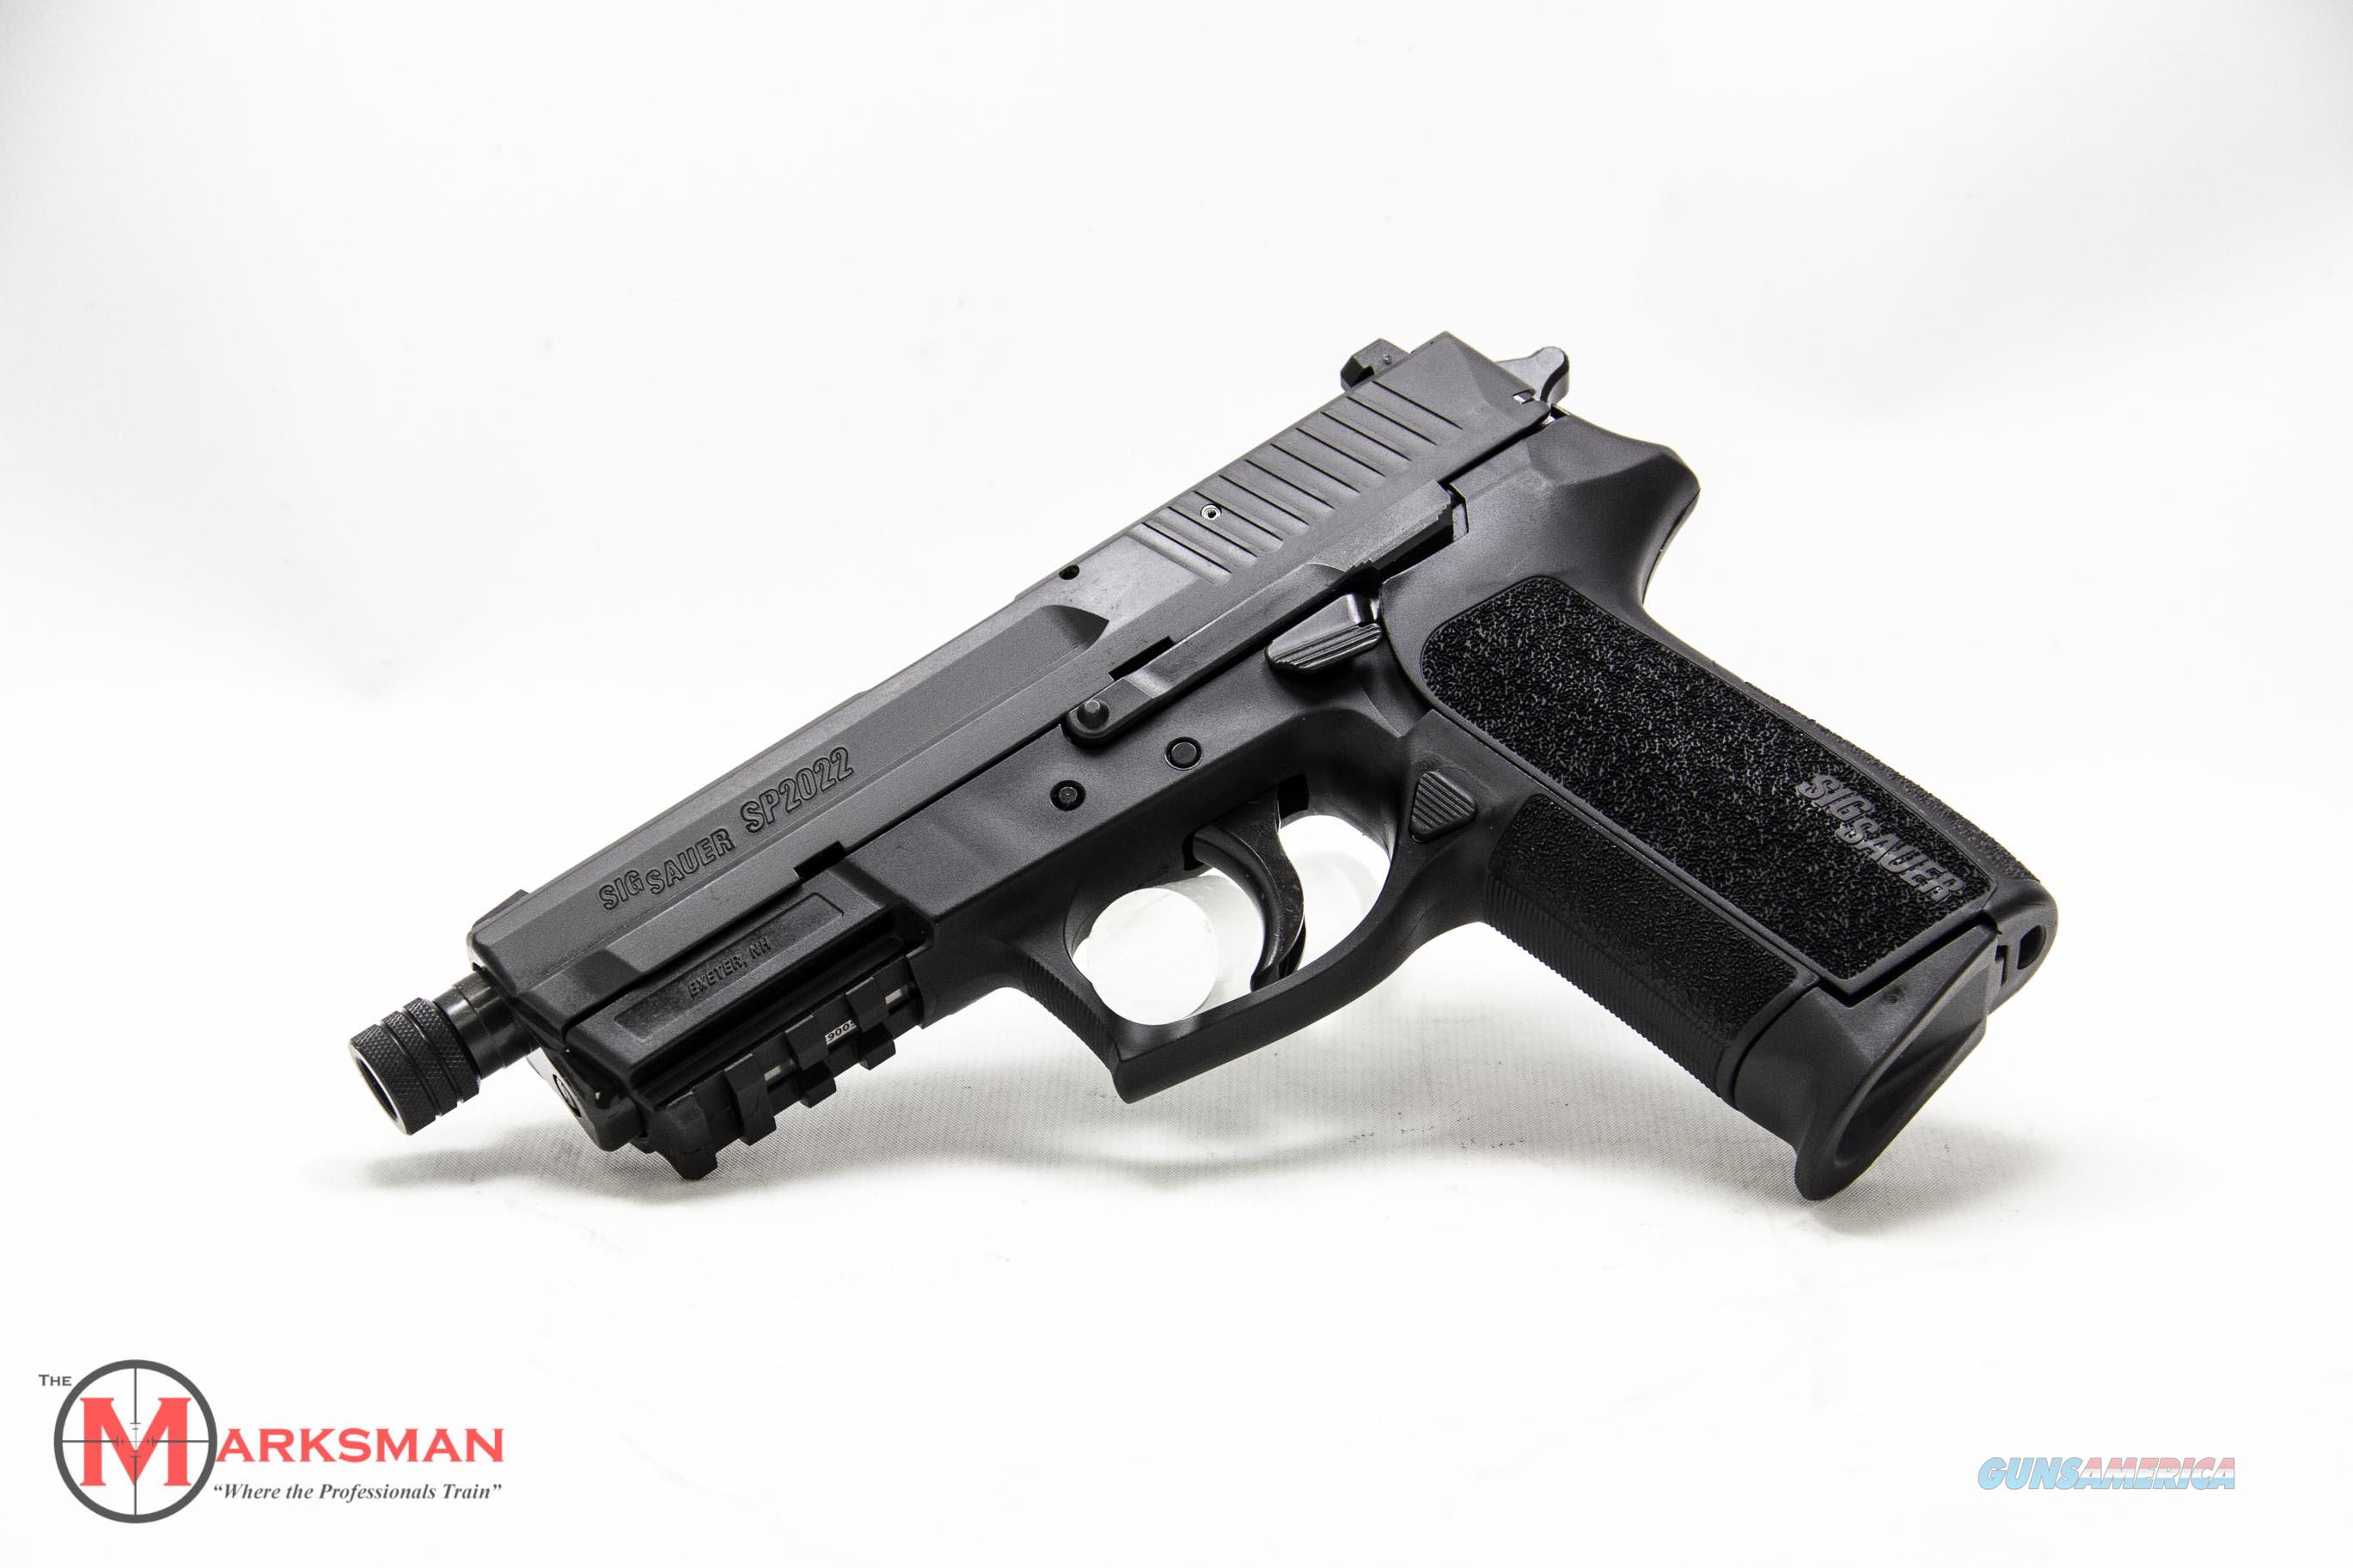 Sig Sauer SP2022, 9mm, Night Sights & Threaded ... for sale